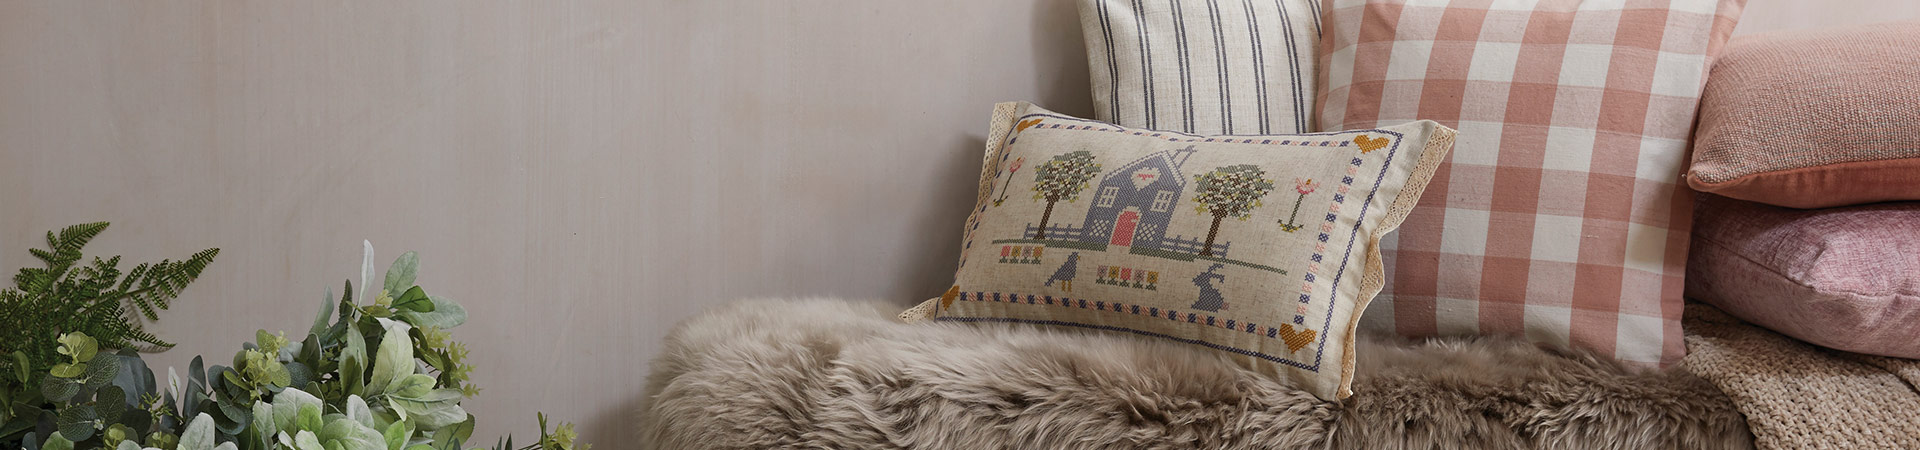 homestead-cushions.jpg